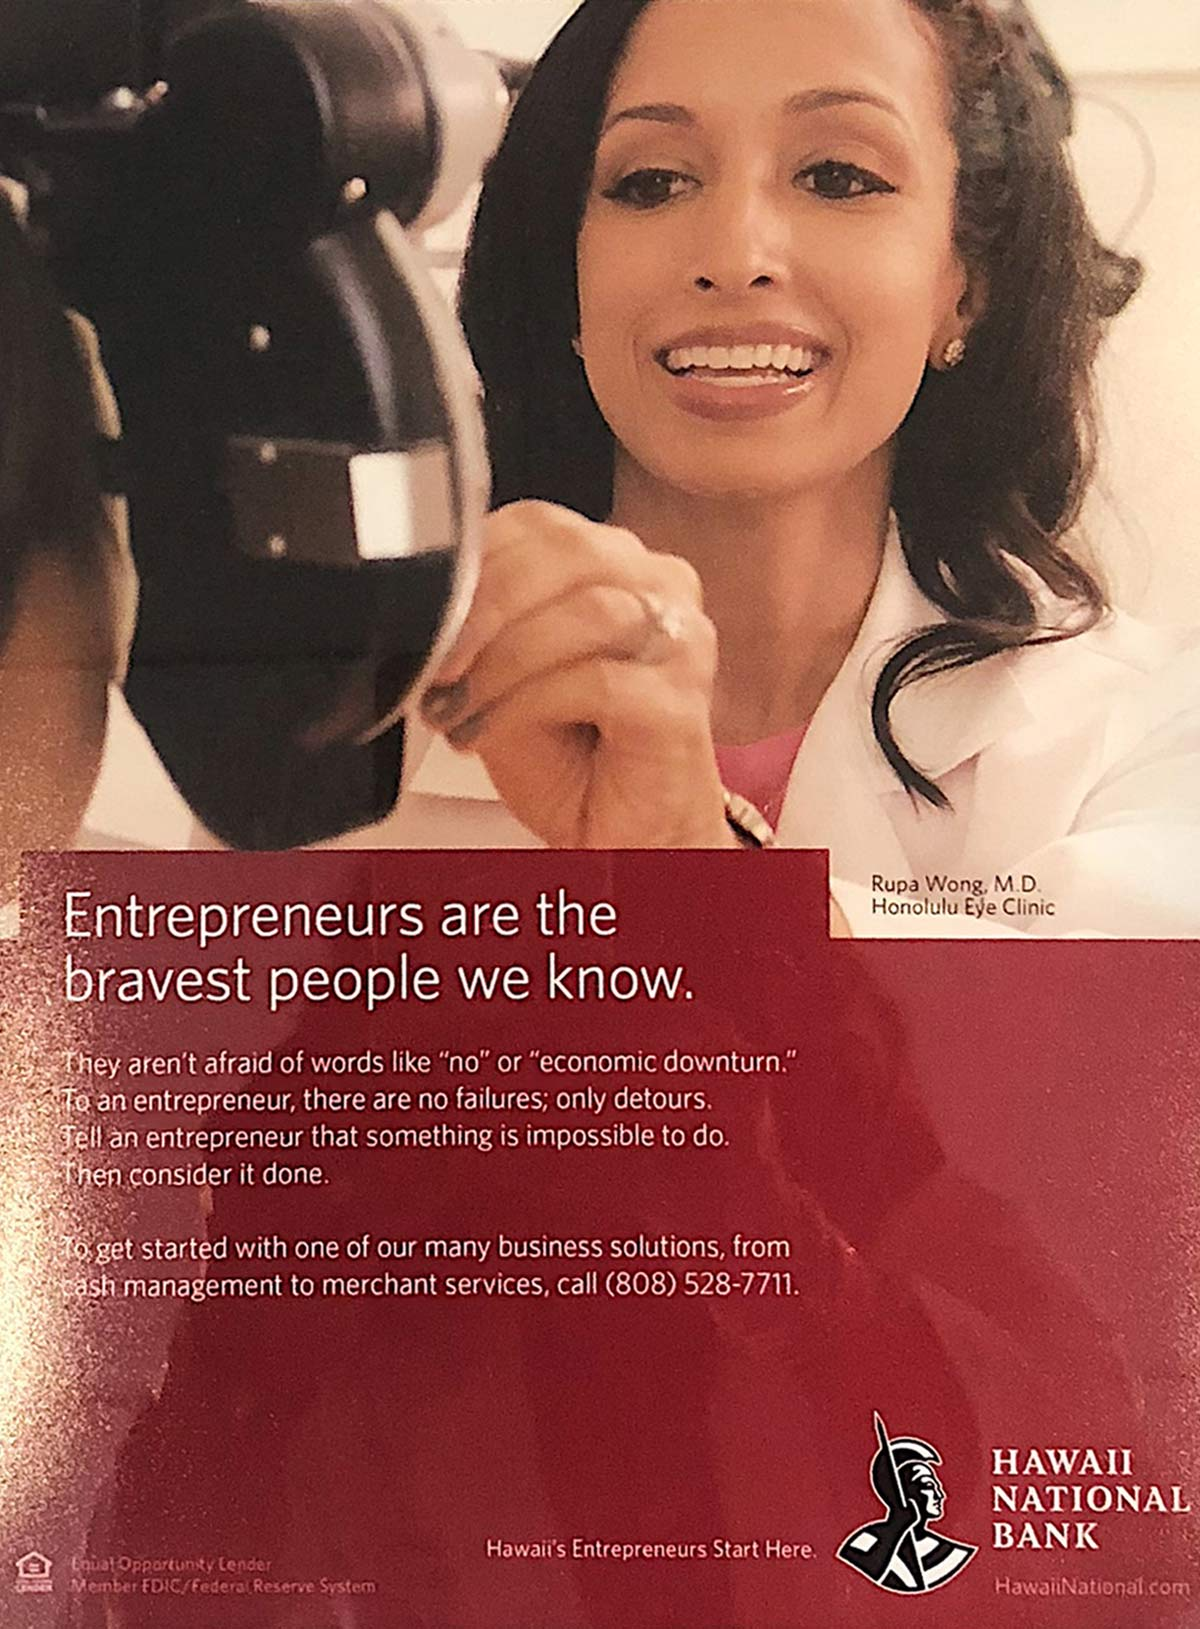 Hawaii National bank ad featuring Dr Rupa Wong